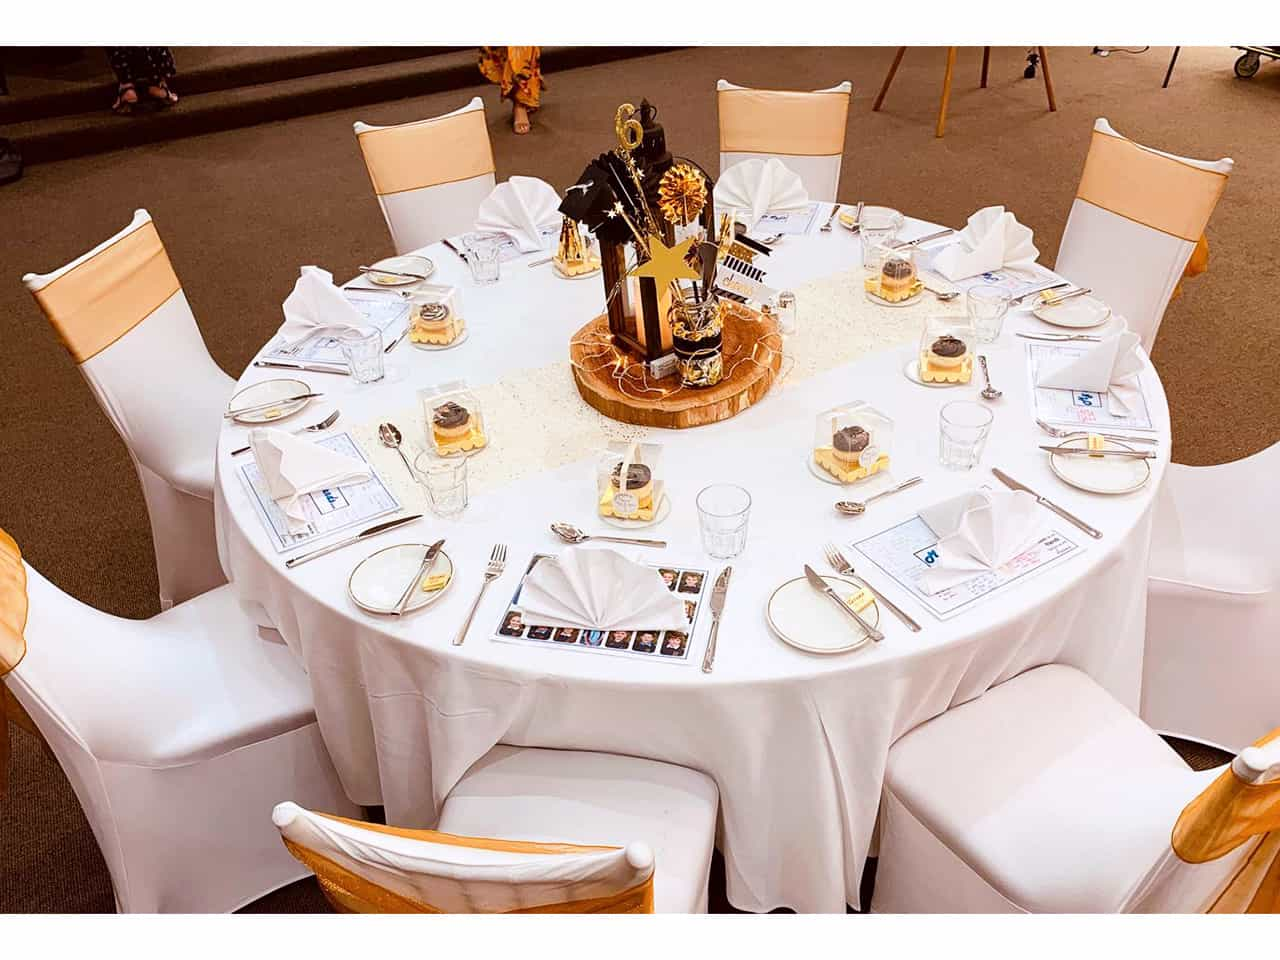 Banquet table for event